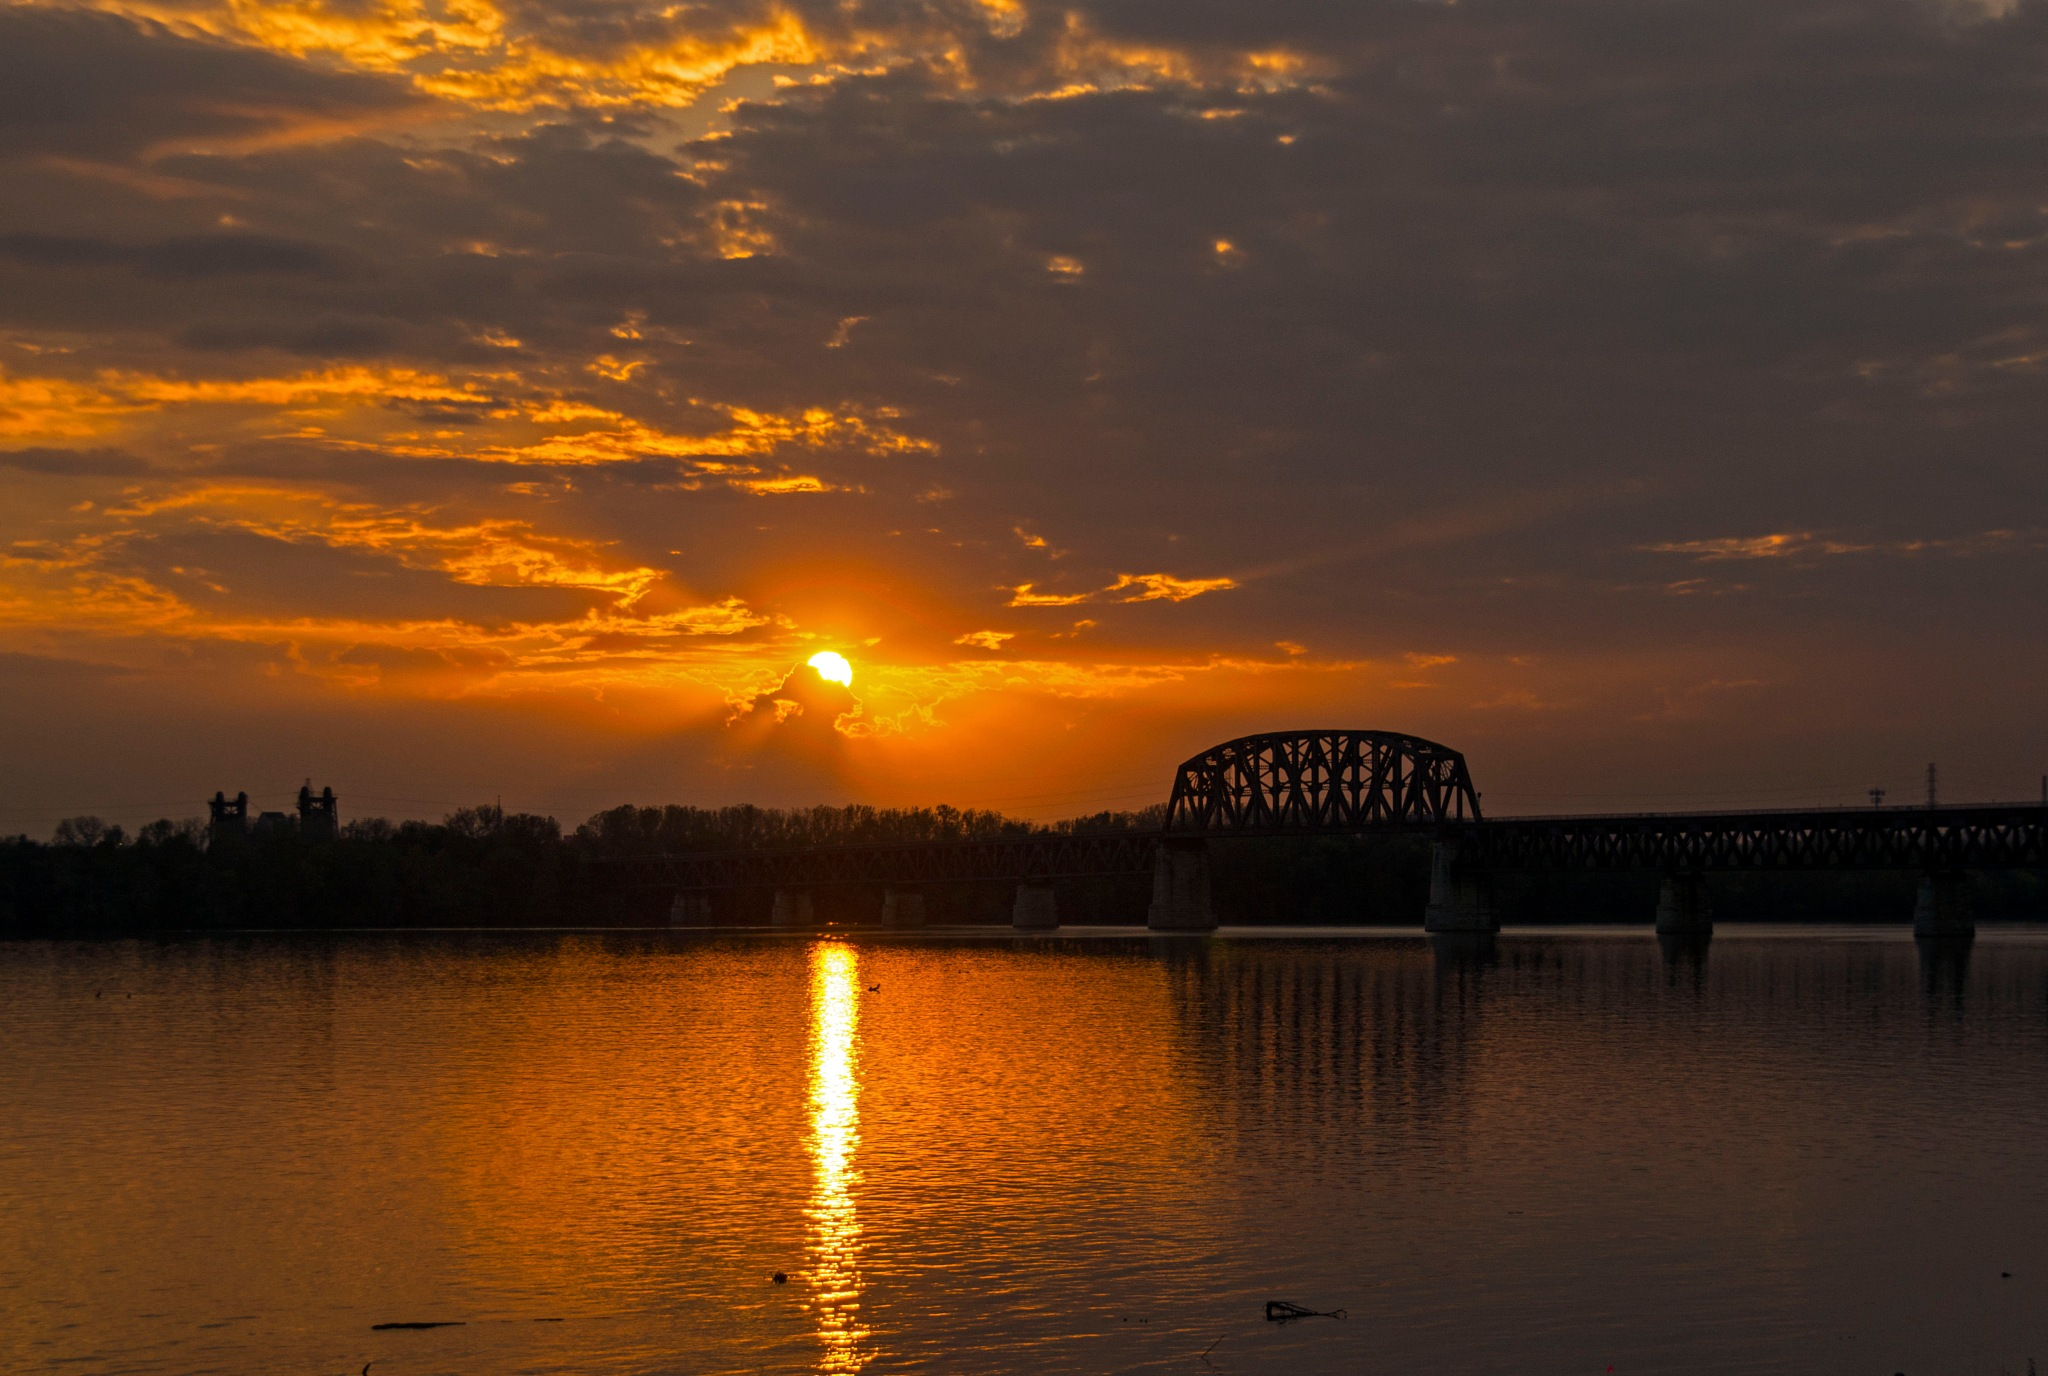 Reflection of the Ohio River by Dean Francisco